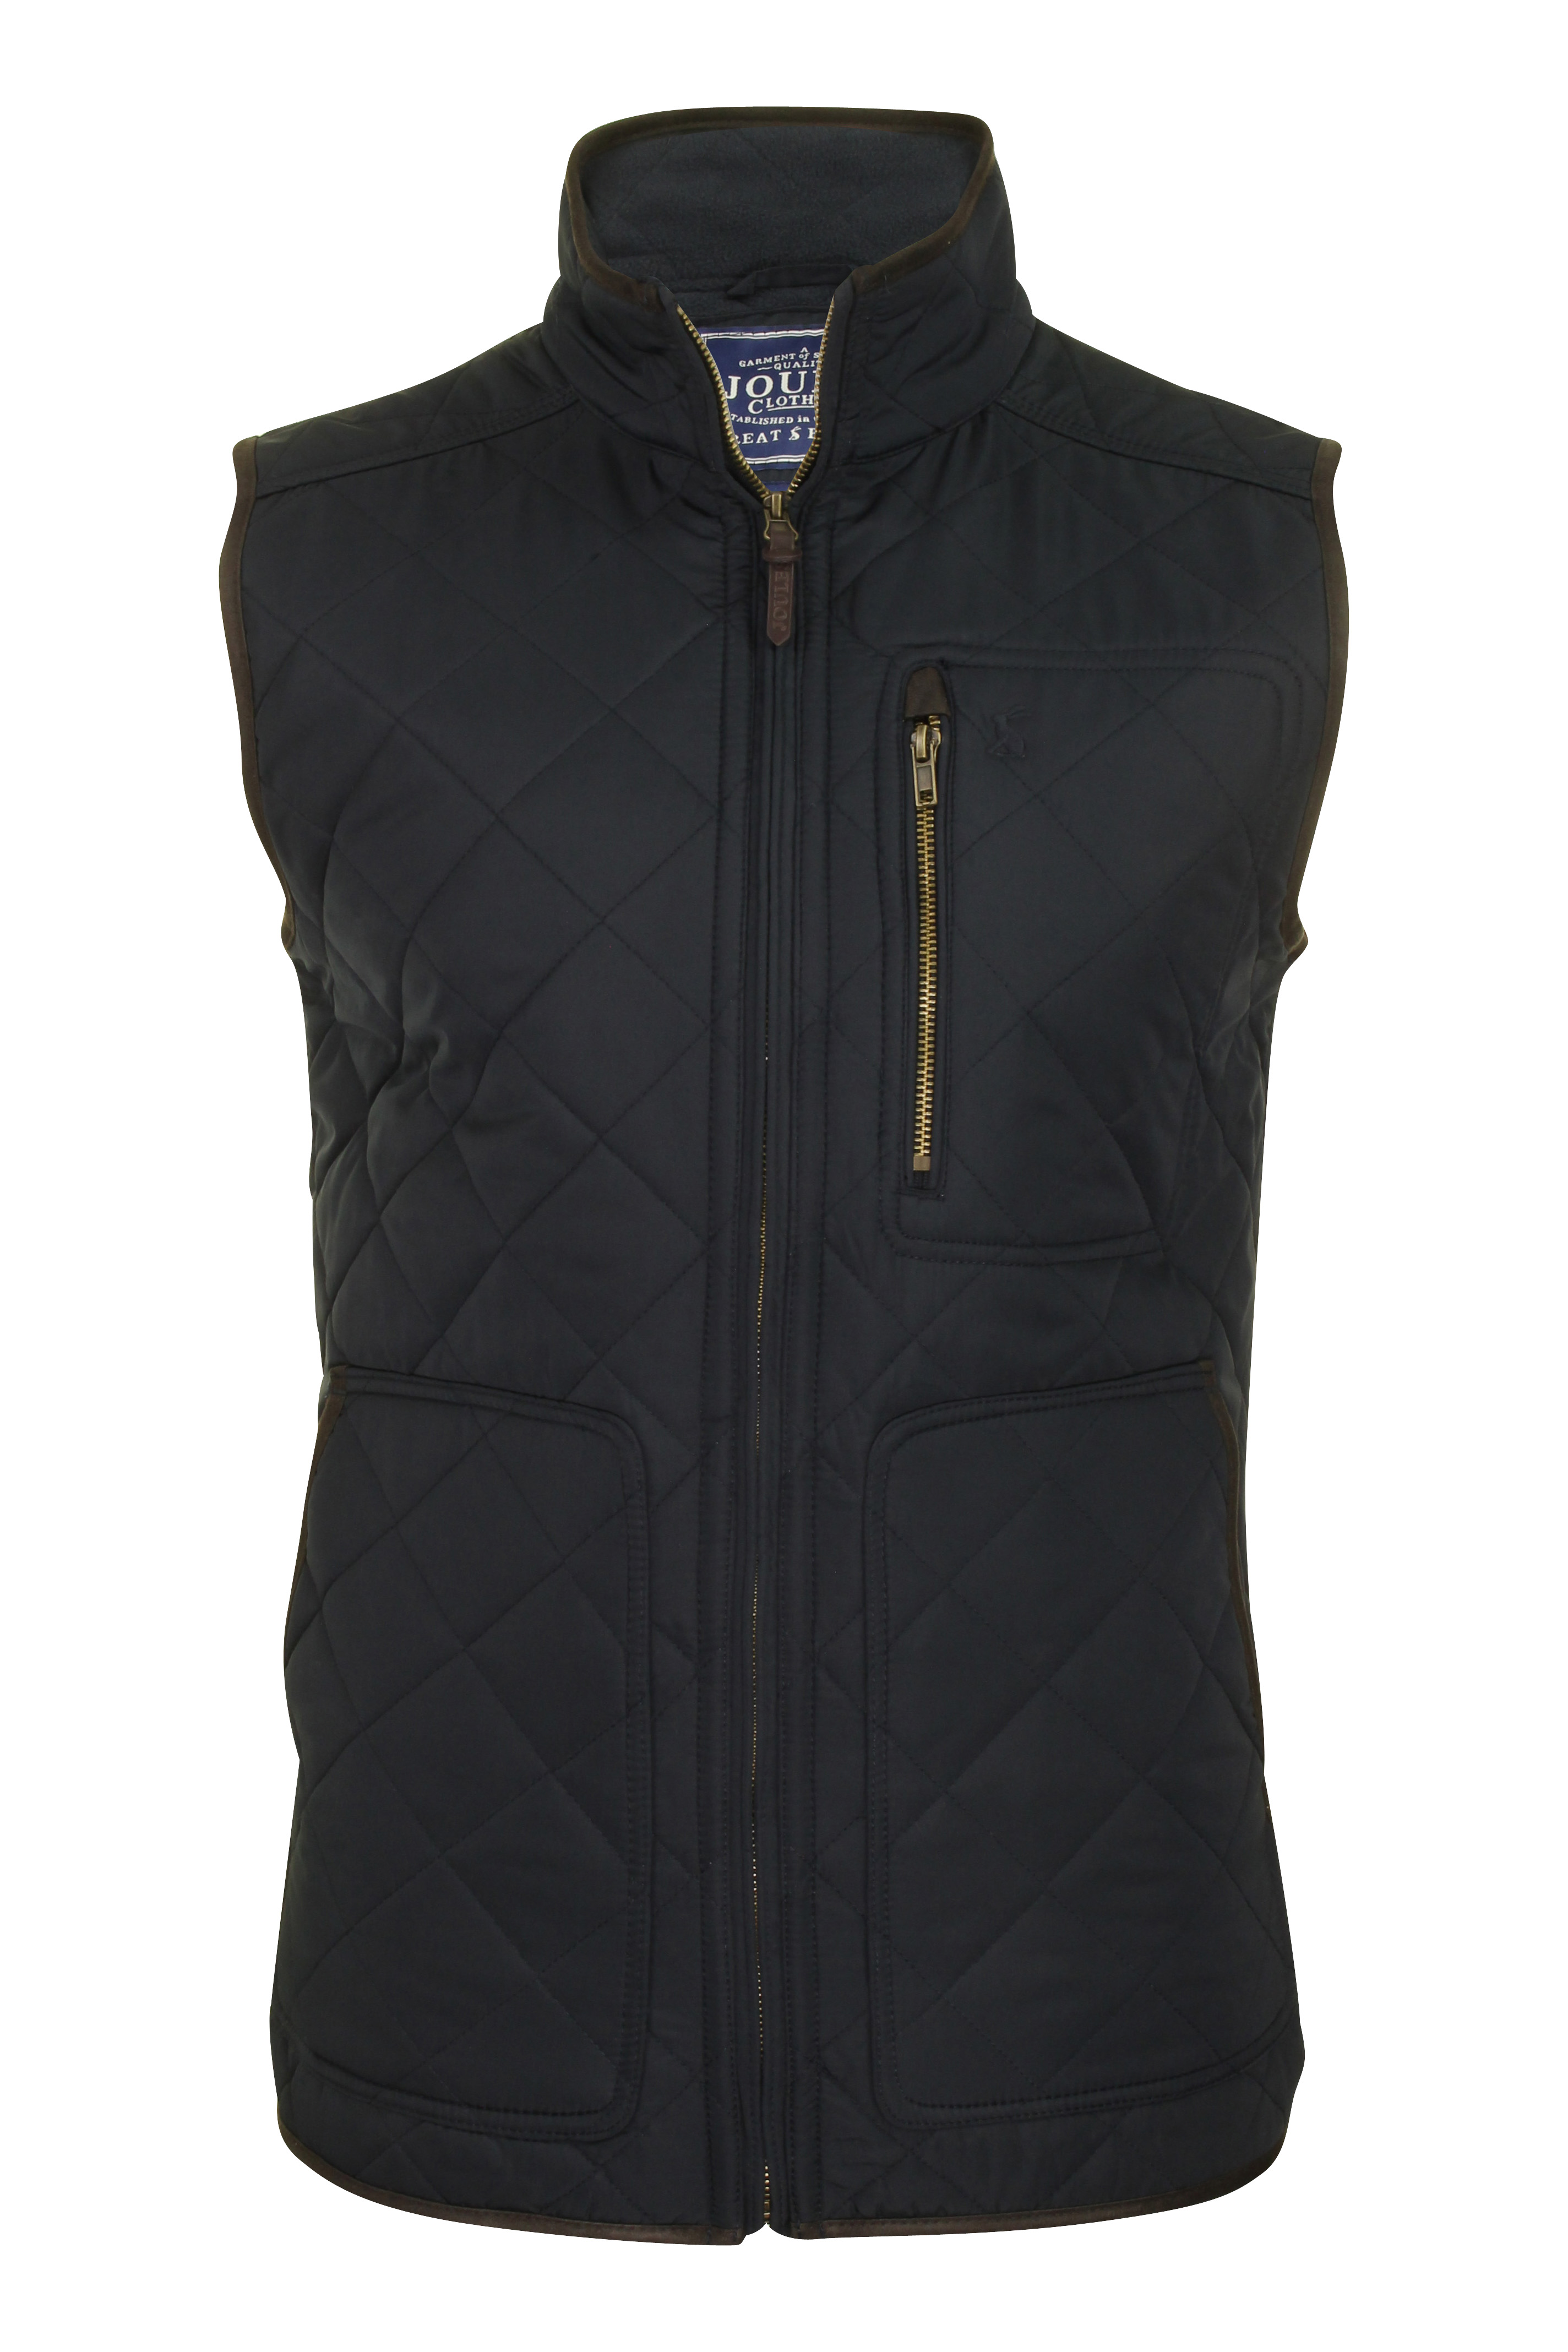 Joules Quilted 'halesworth' Lined Gilet Mens Navy Bodywarmer Fleece Marine rwx4rCq1